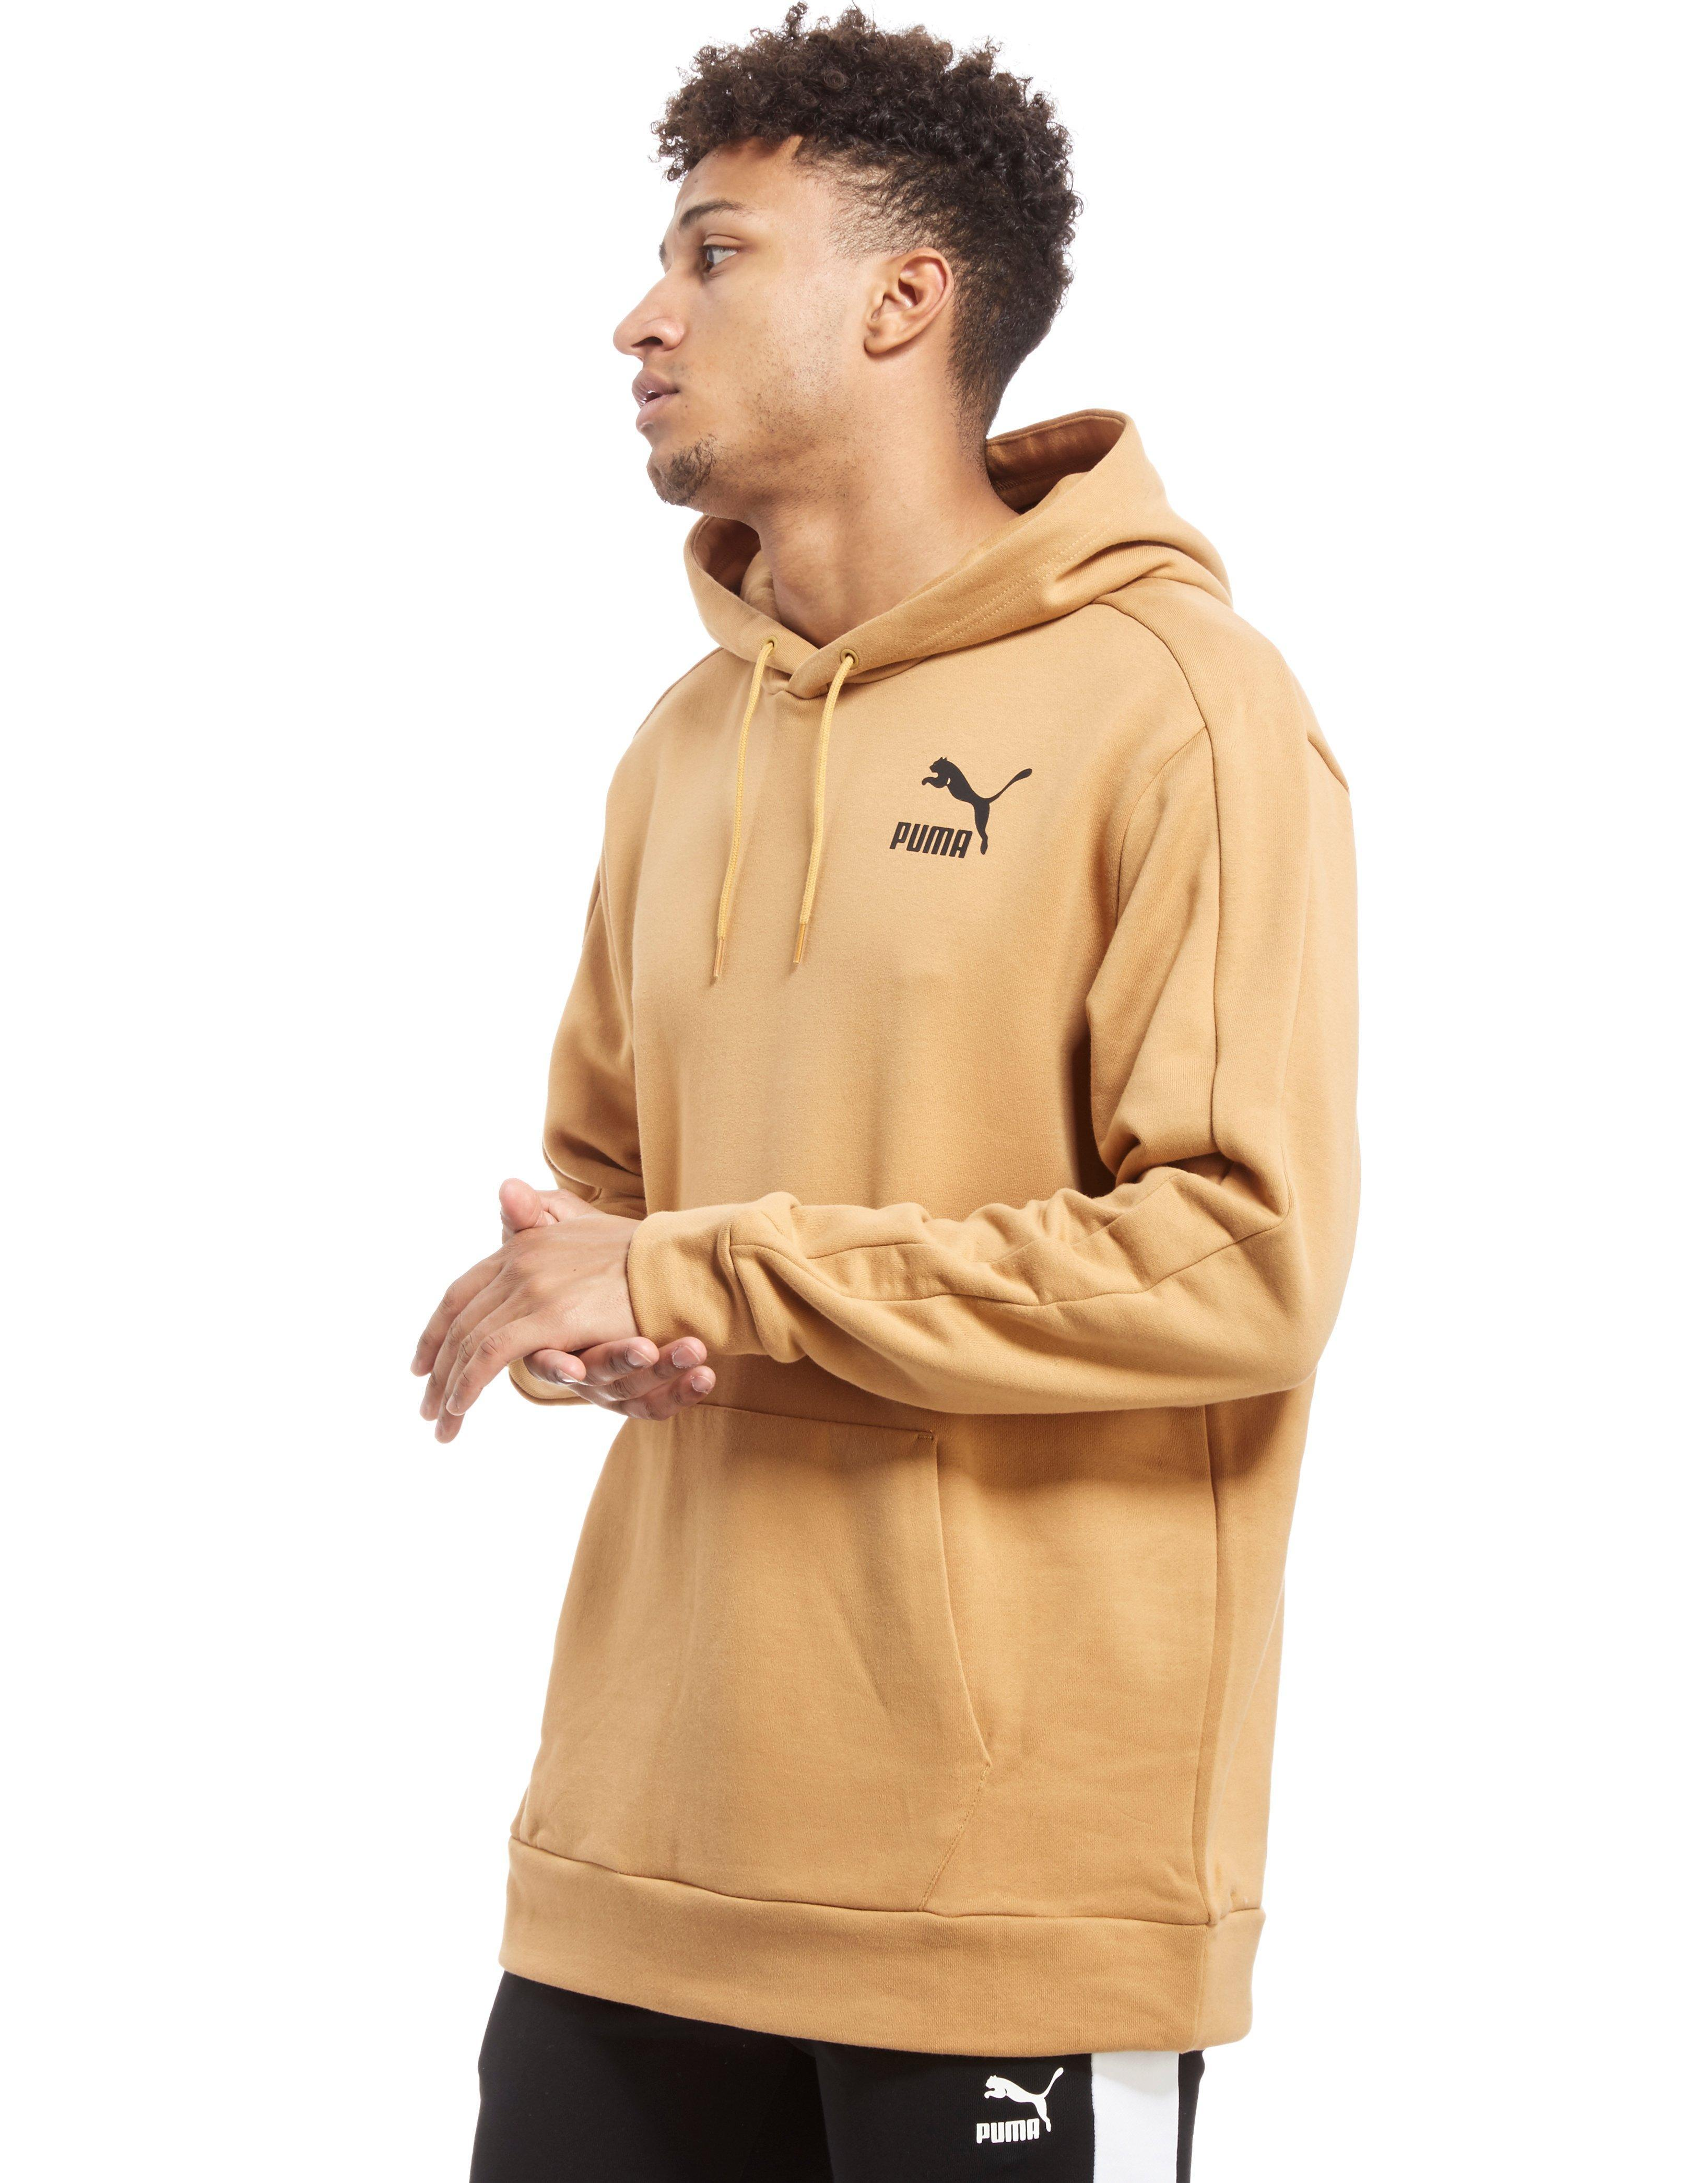 PUMA T7 Oversized Heavy Hoodie for Men - Lyst 883a1f8b70c93